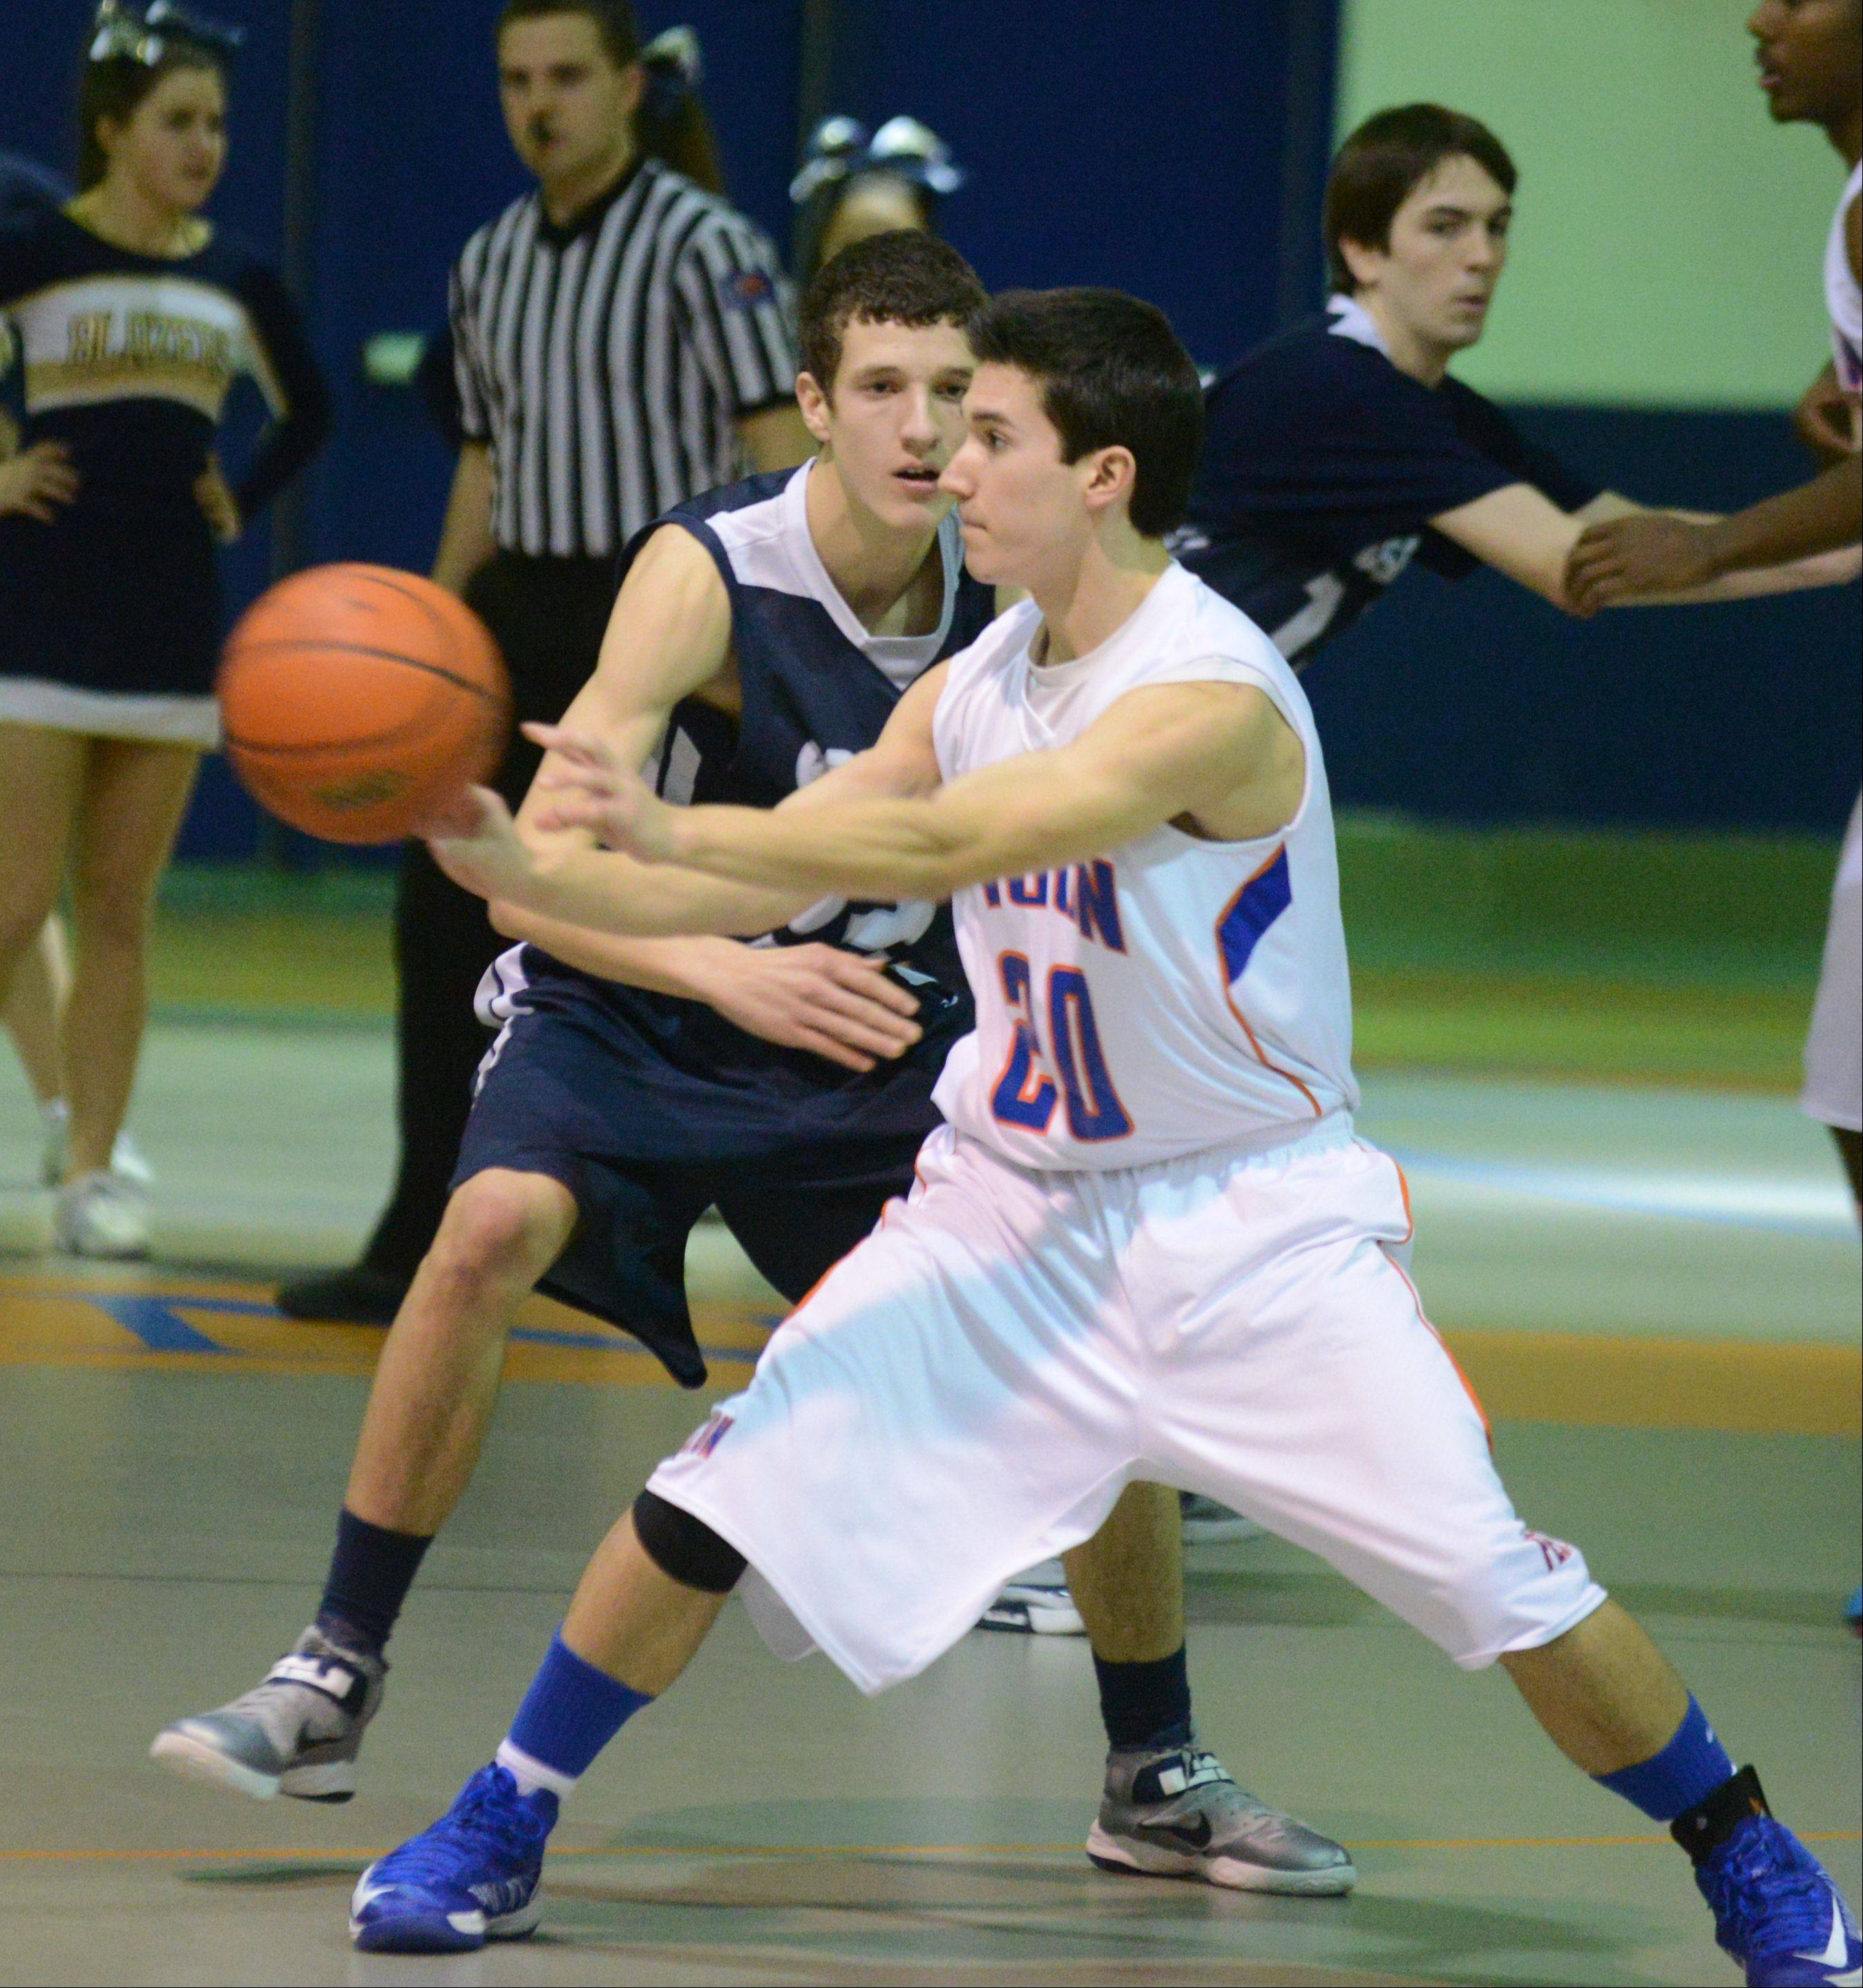 Fenton hosted Addison Trail Tuesday night for boys basketball in Bensenville.